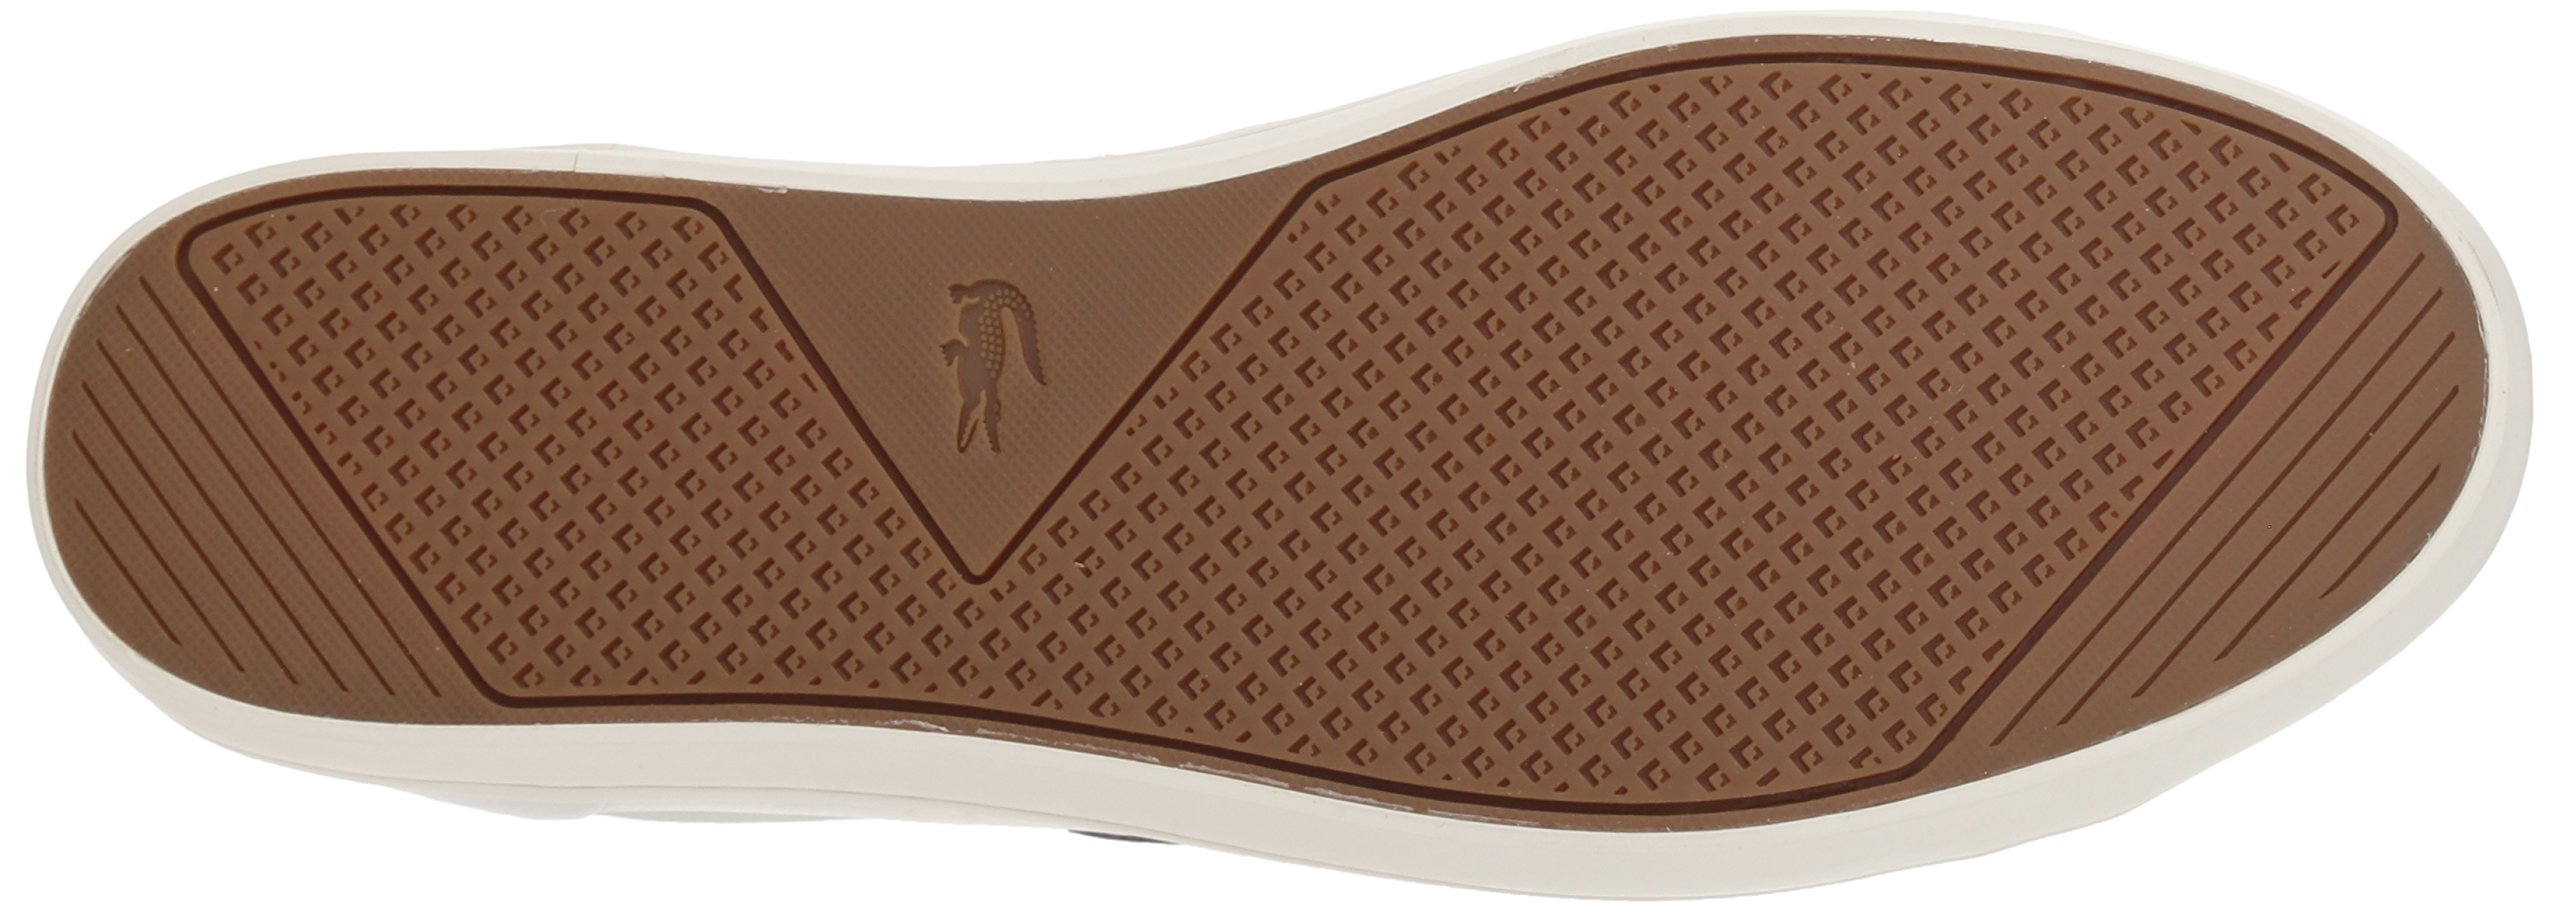 Lacoste Men's Straightset Sneakers by Lacoste (Image #3)